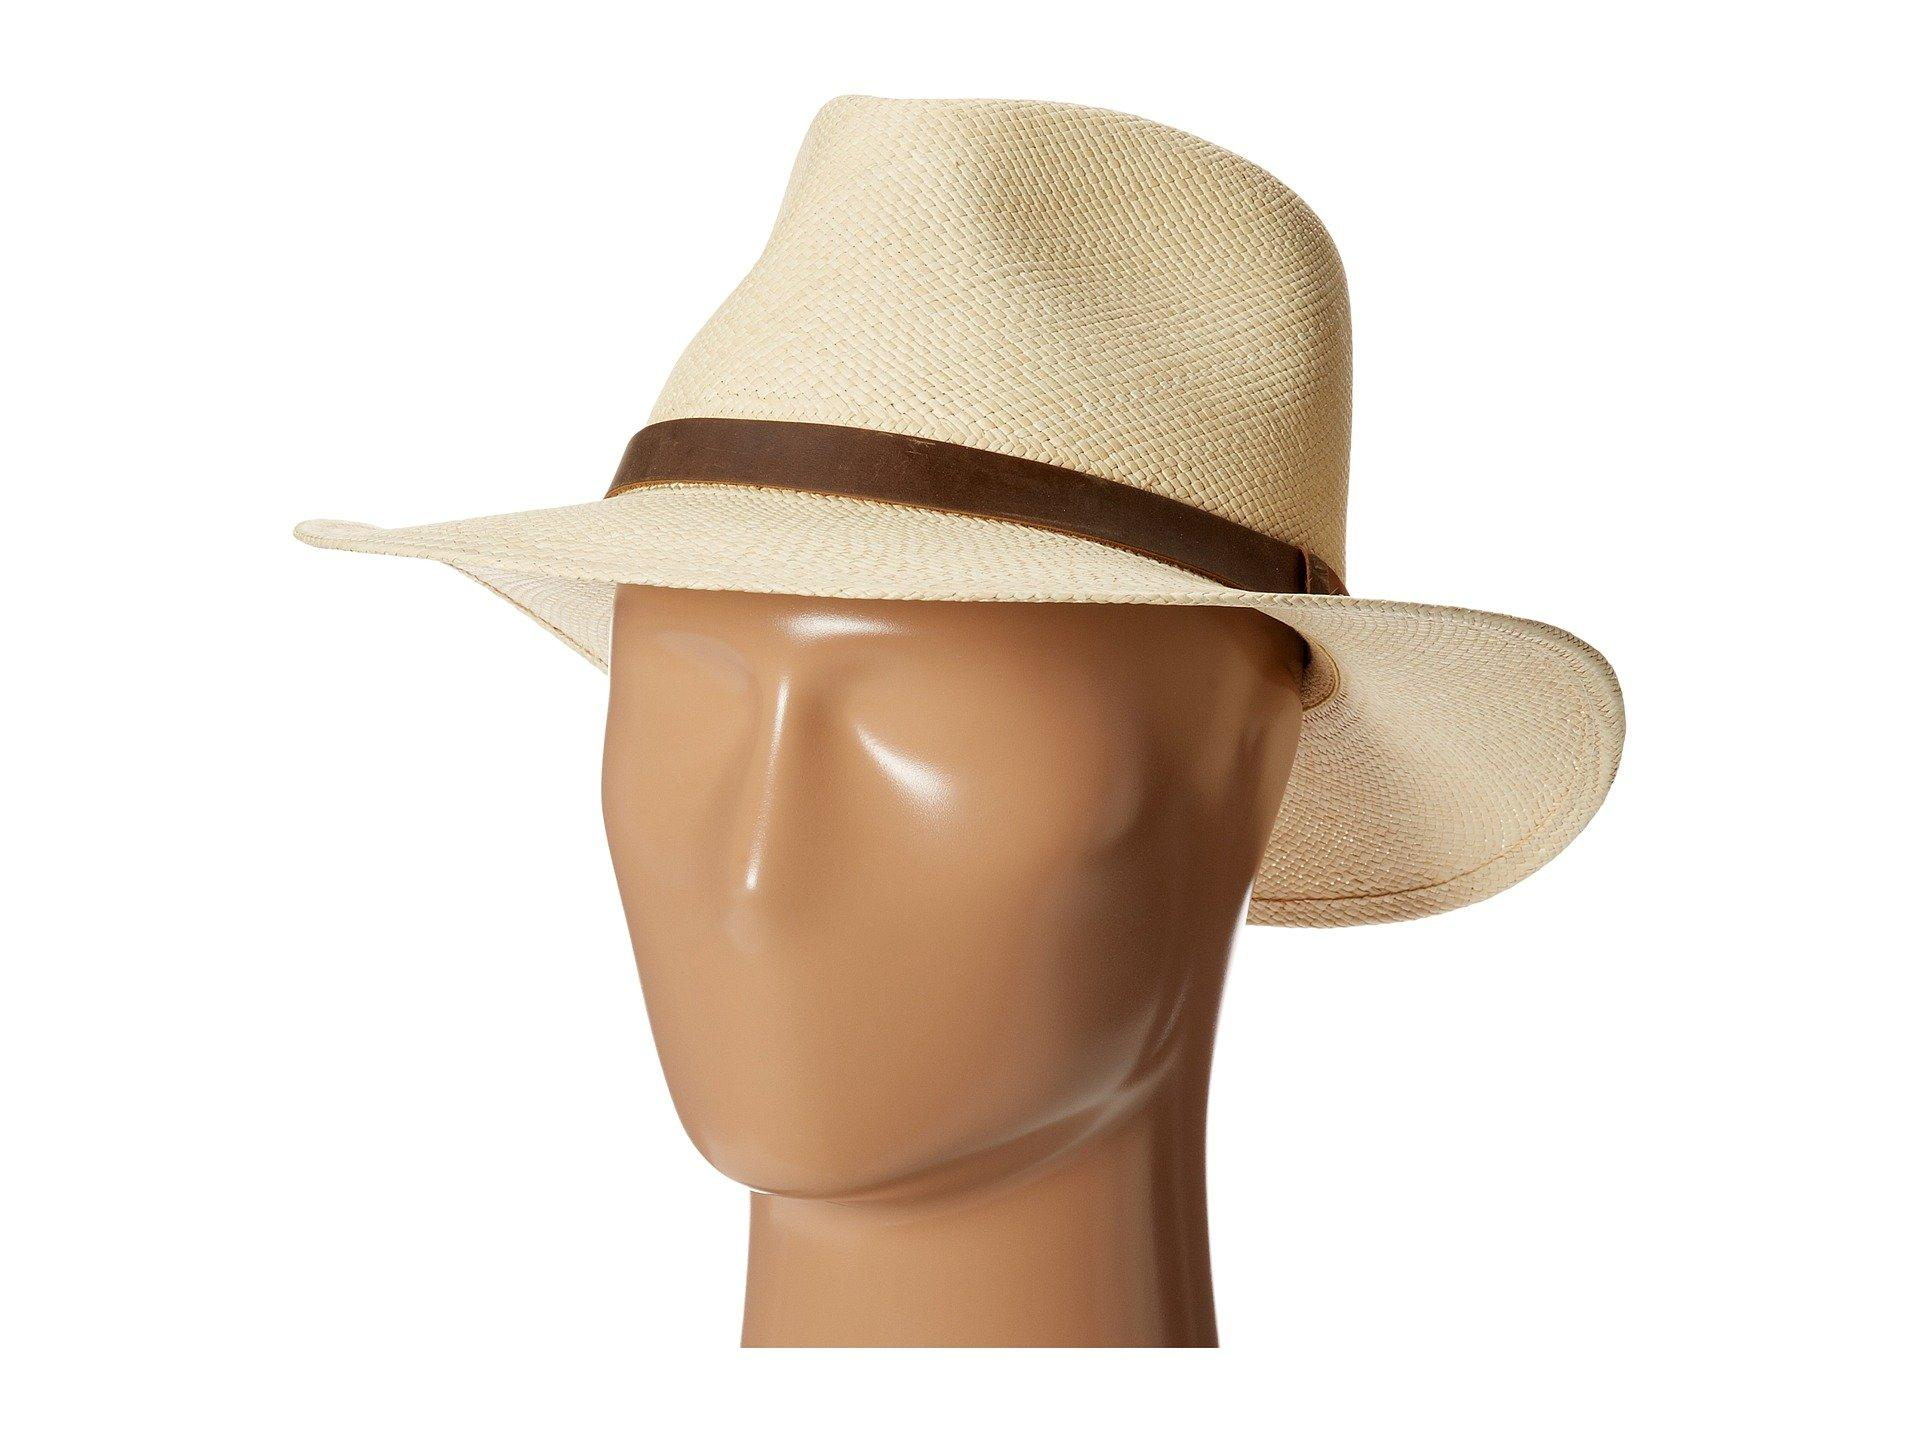 bdbfd9be3 Men's Natural Panama Outback With Leather Trim X